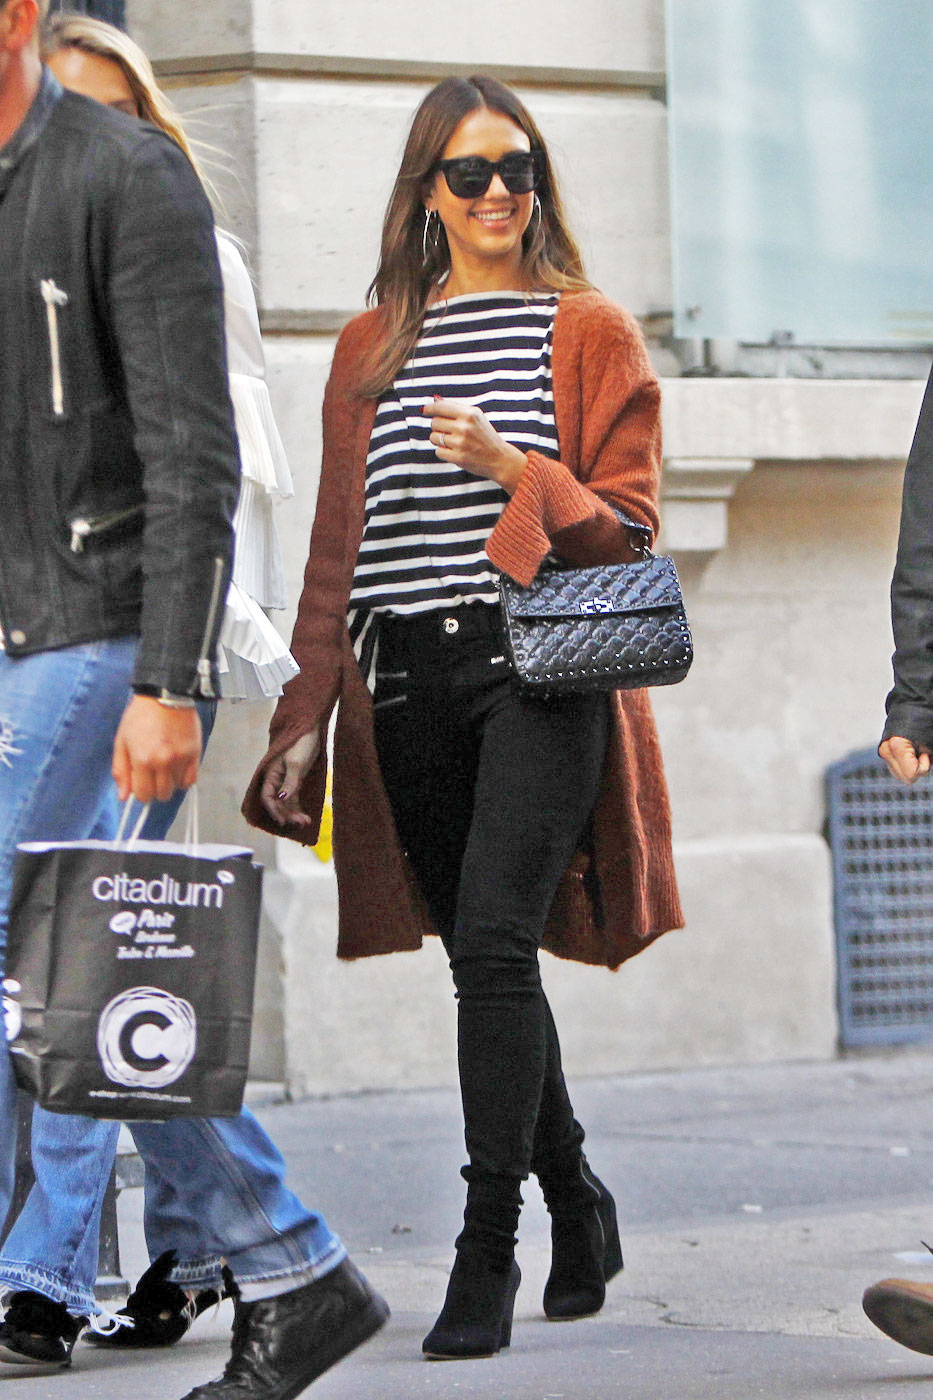 Paris In The Fall Jessica Alba 39 S Stripe Top And Rust Cardigan Look For Less The Budget Babe